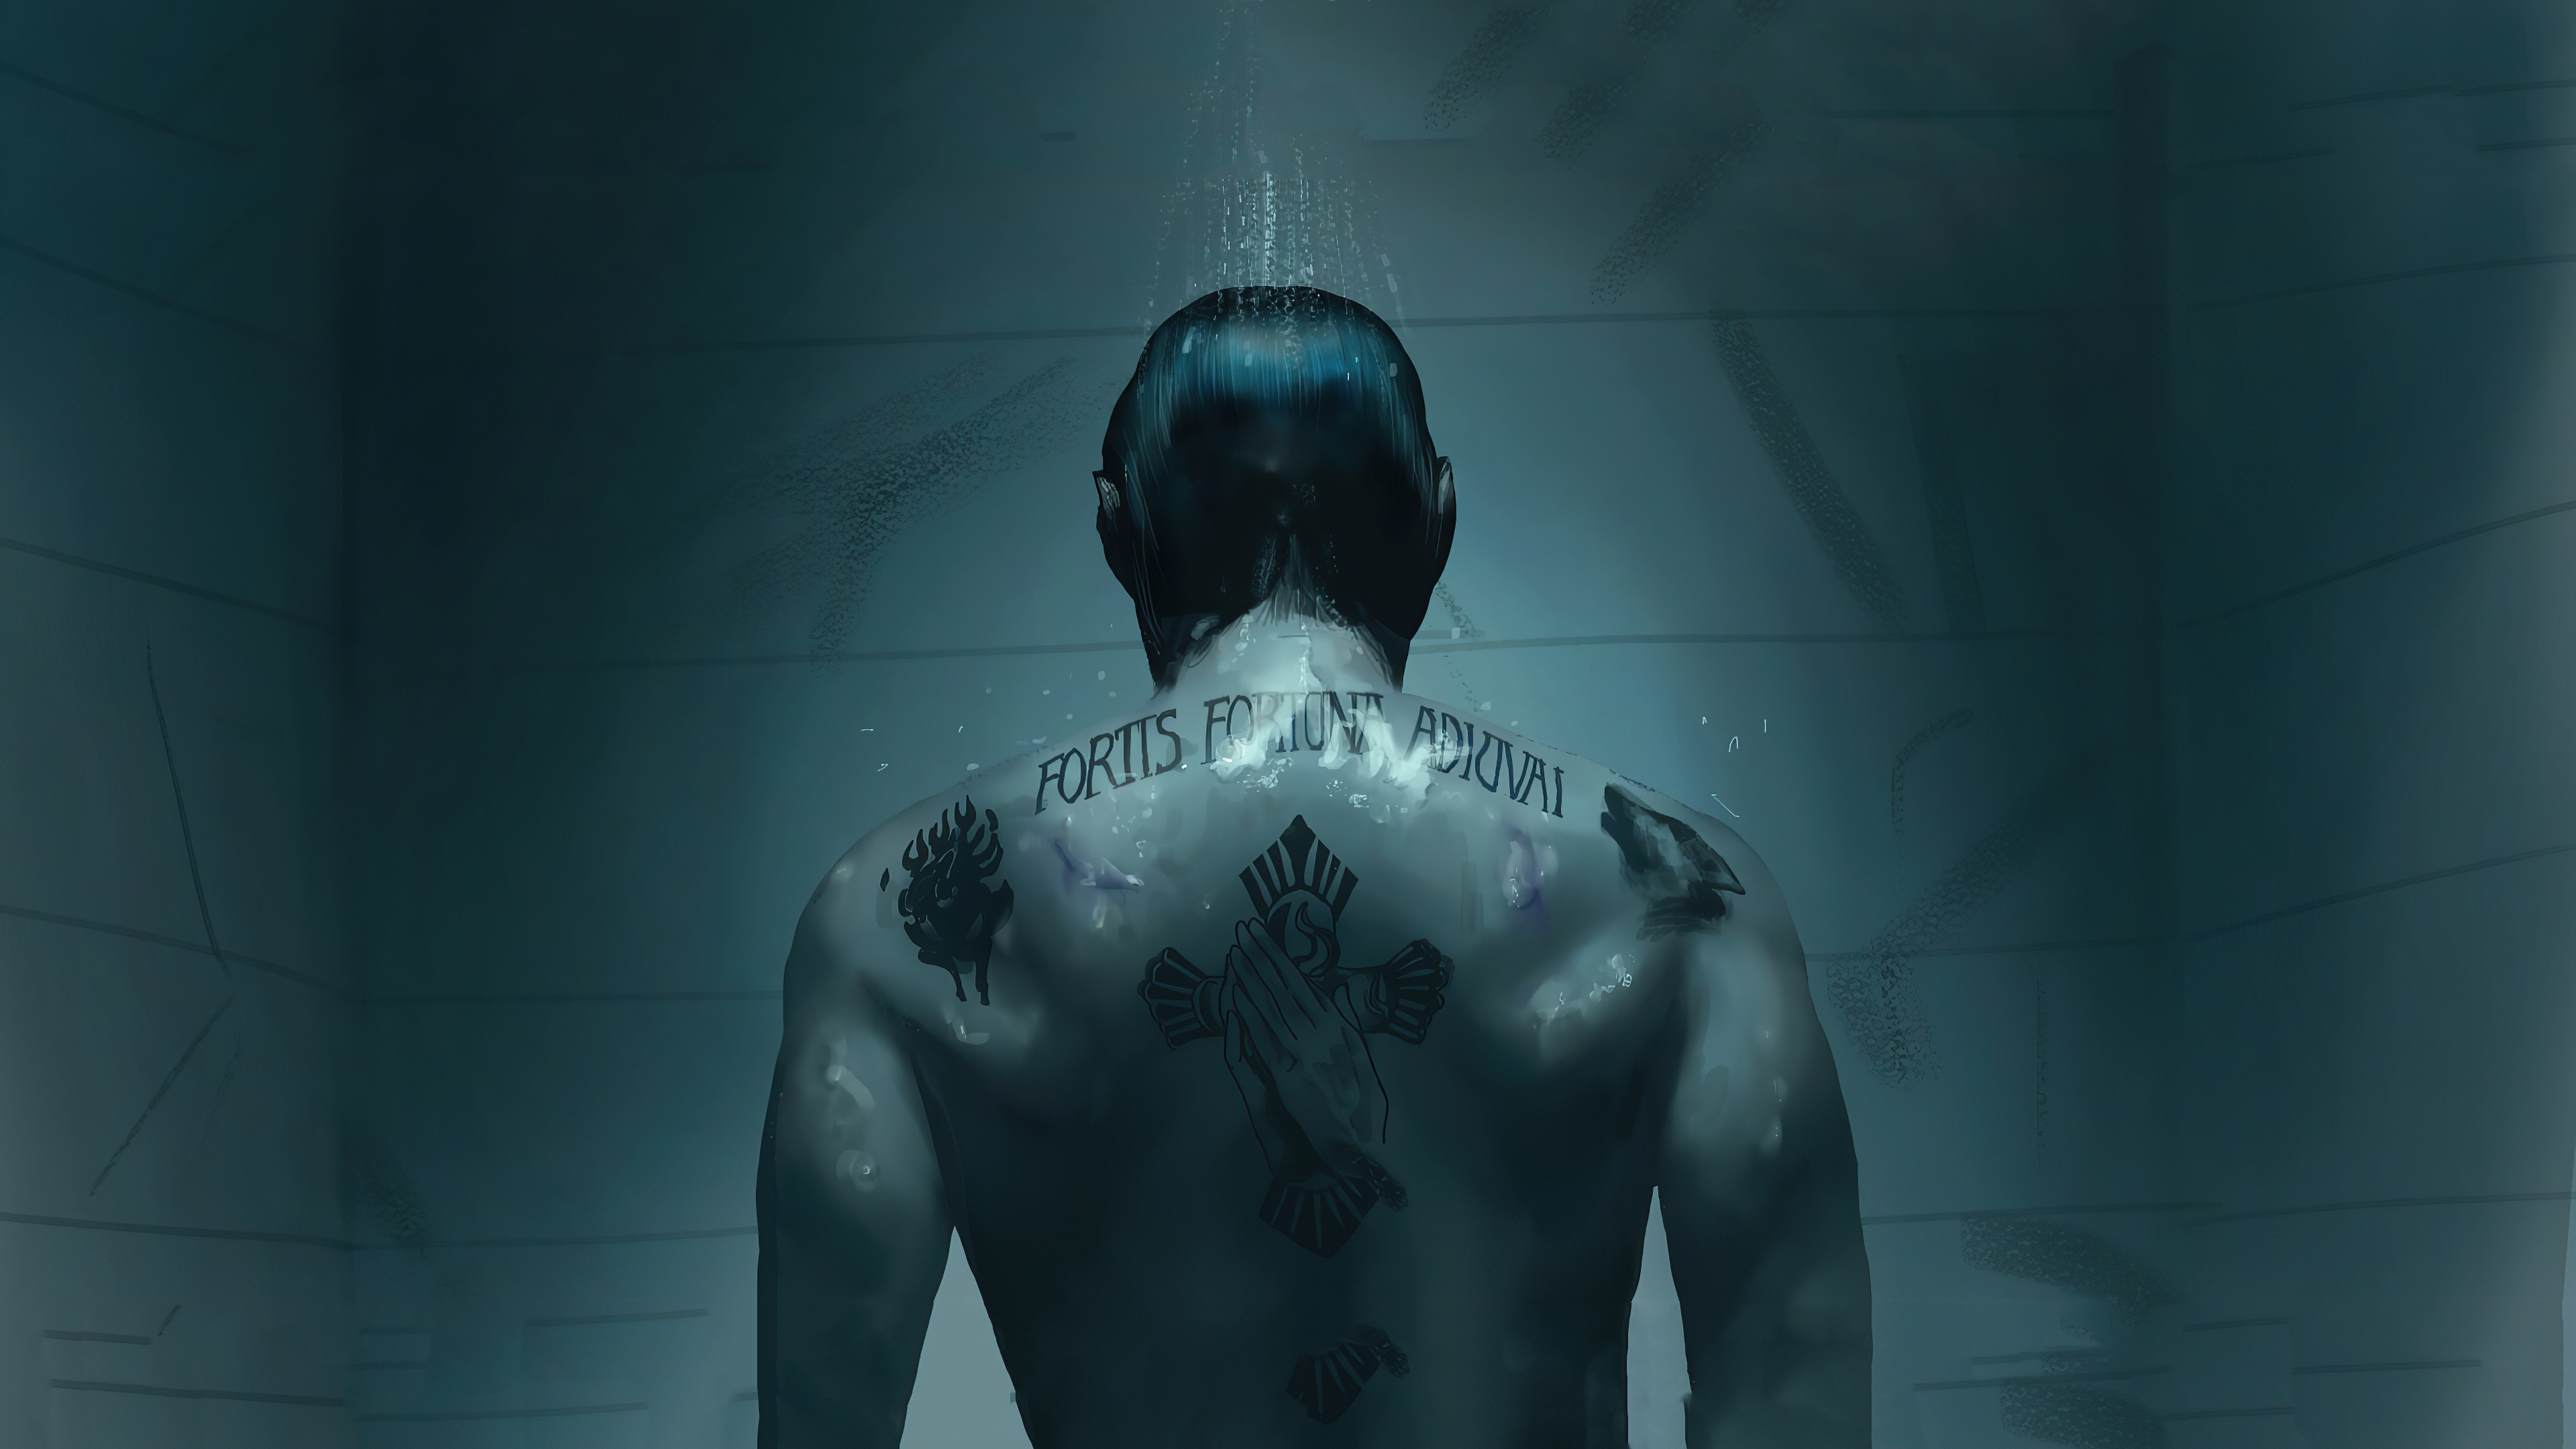 John Wick Tattoo Hd Movies 4k Wallpapers Images Backgrounds Photos And Pictures